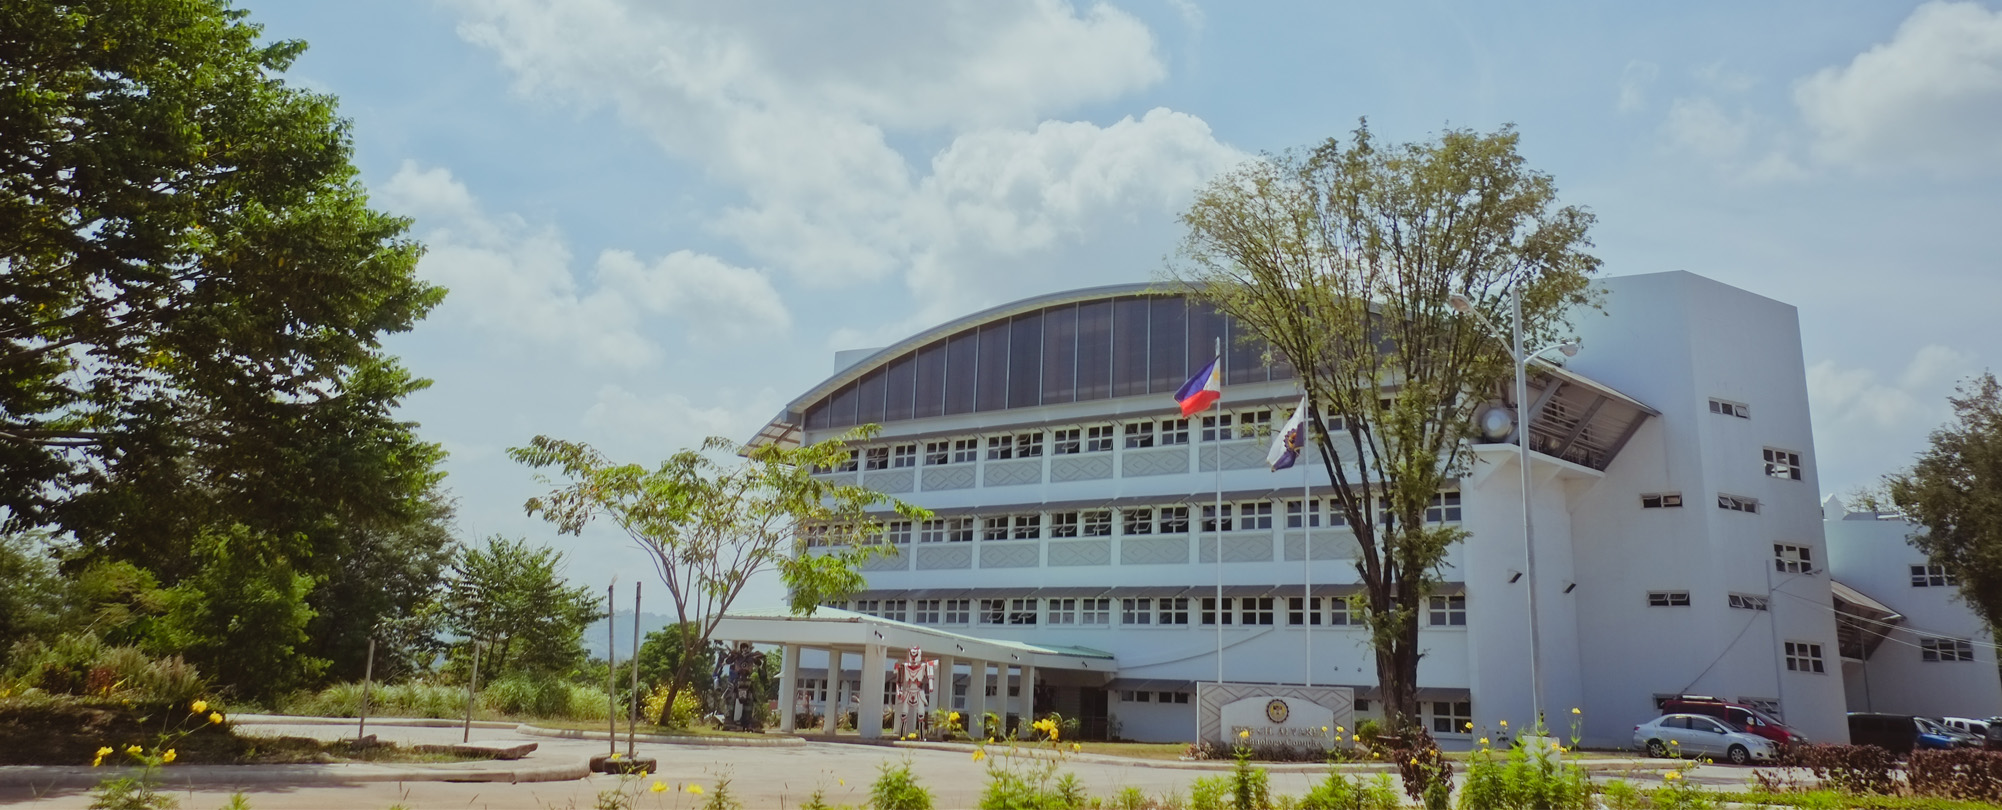 Andrew L Gotianun Sr Center for Integrated Technologies Full Scholarships